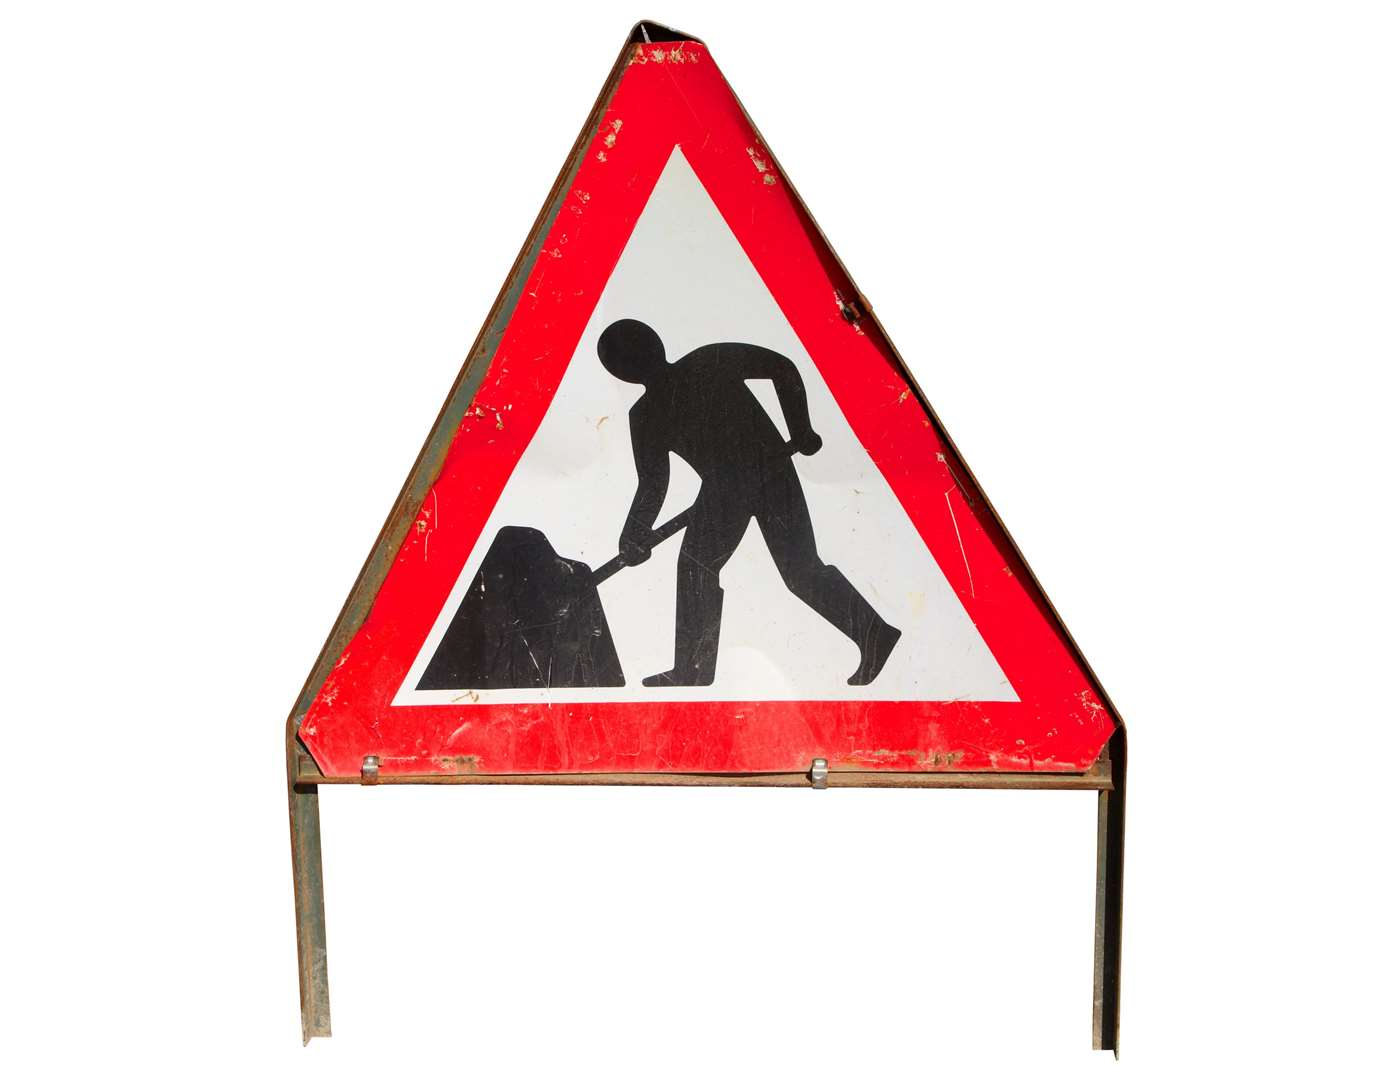 Overnight roadworks will begin on Sunday on the A889 west of Catlodge.